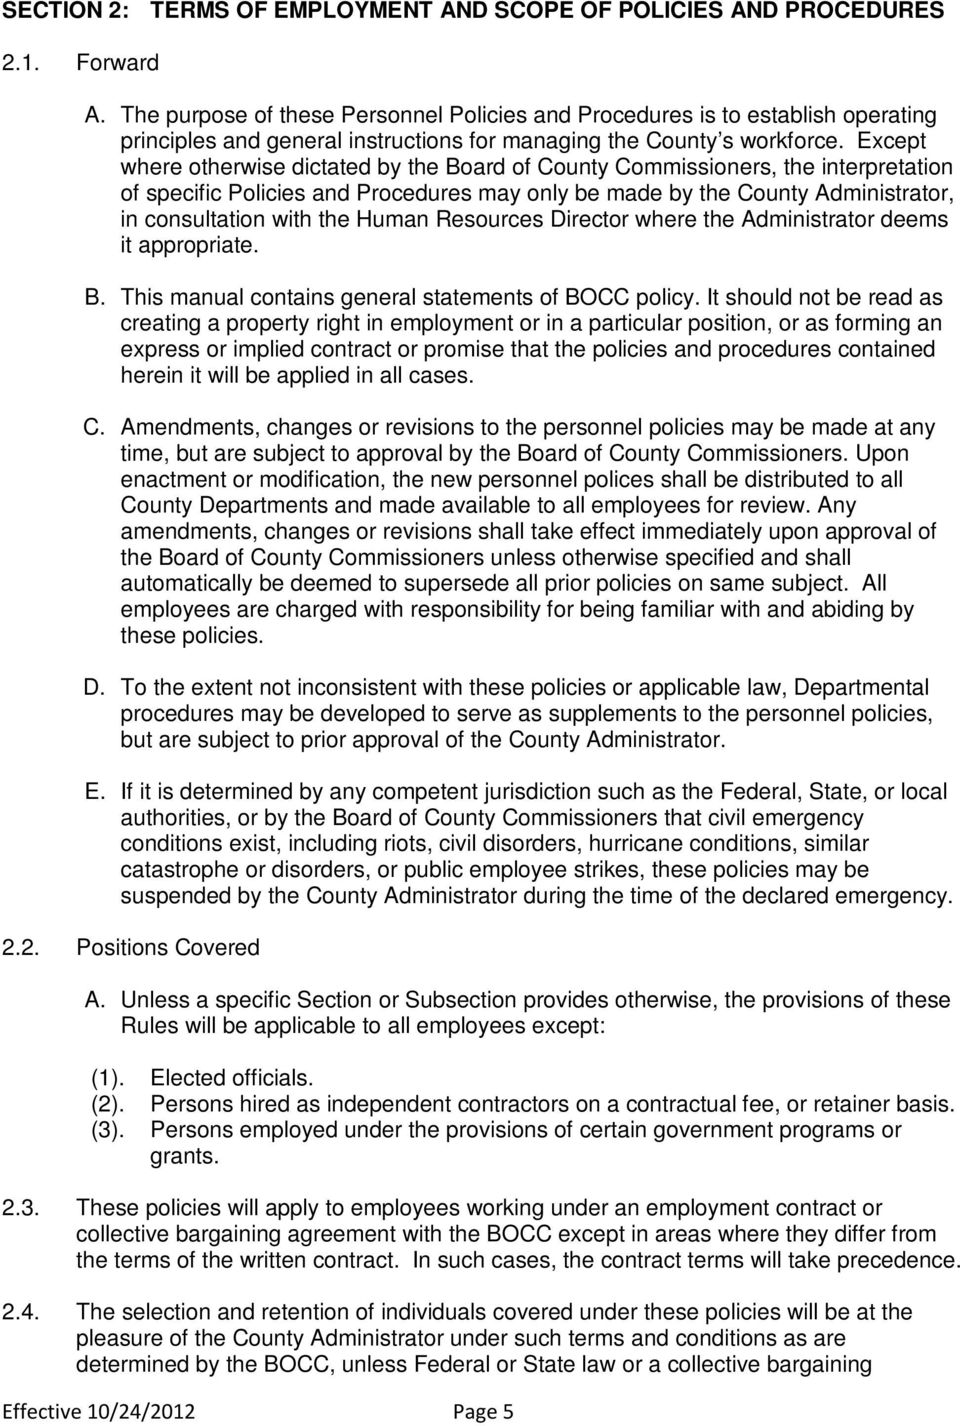 Except where otherwise dictated by the Board of County Commissioners, the interpretation of specific Policies and Procedures may only be made by the County Administrator, in consultation with the